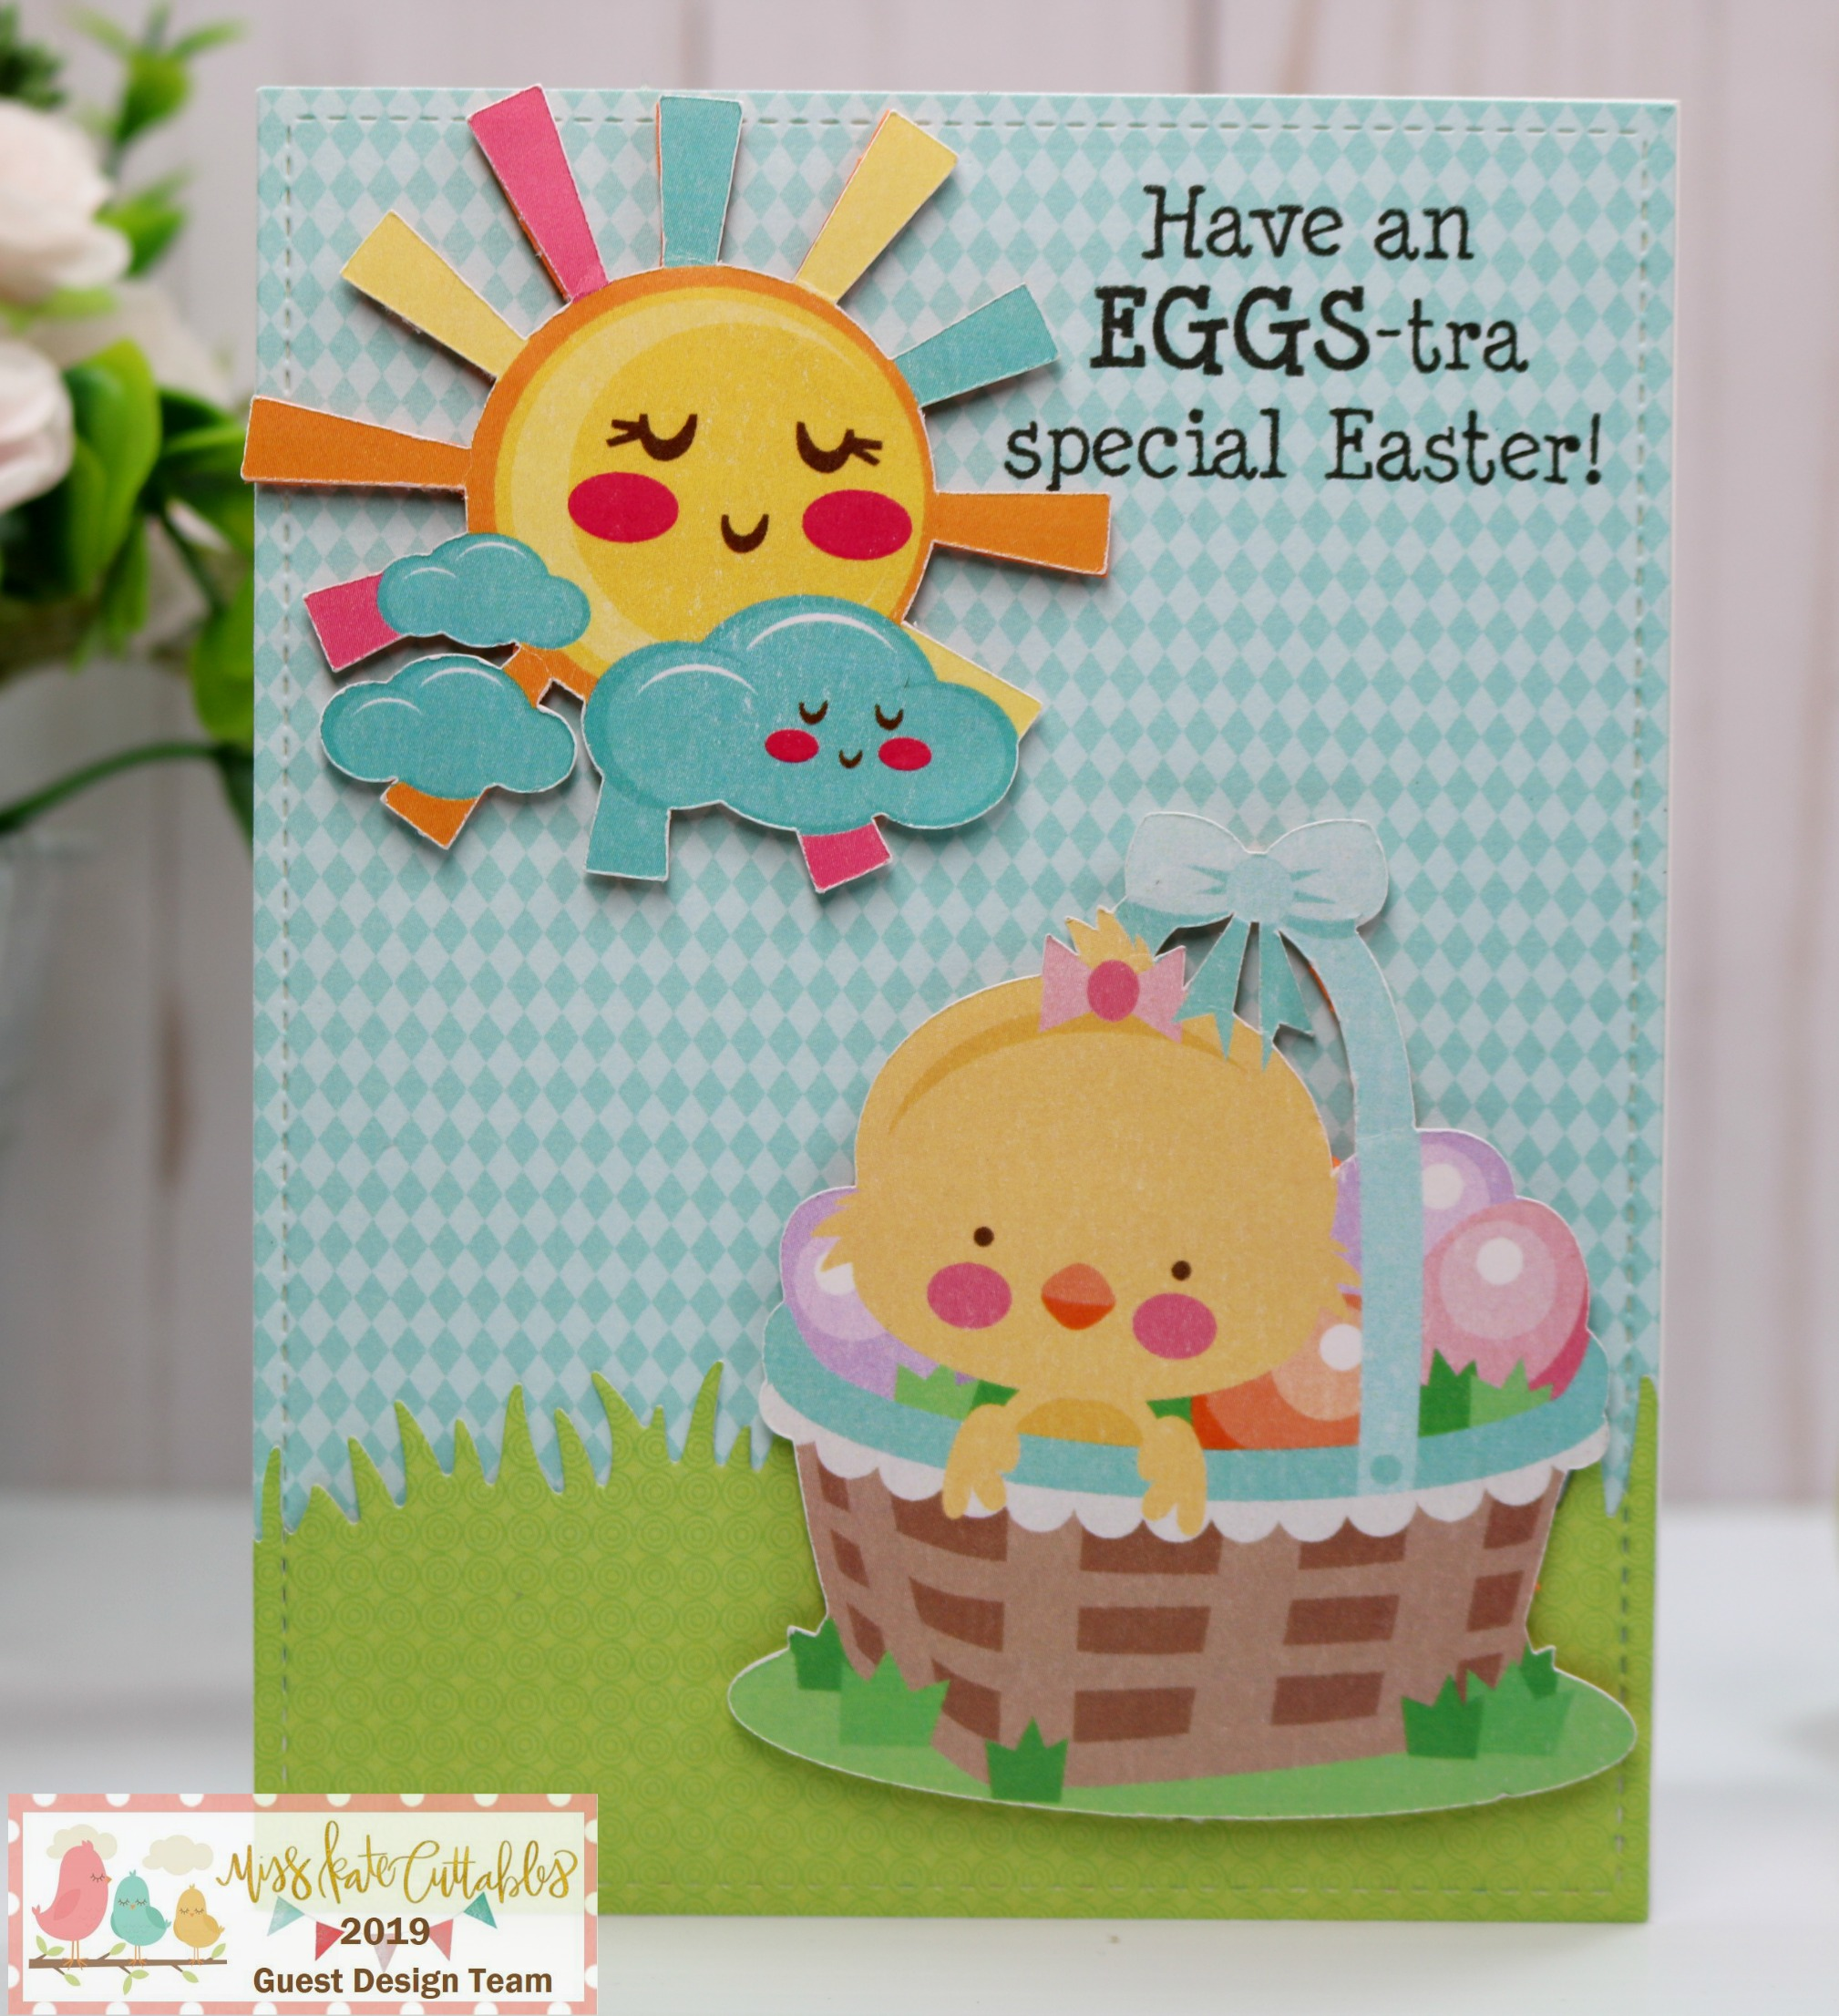 http://creativepixiedesigns.com/wp-content/uploads/2019/04/Miss-Kate-Easter1.jpg